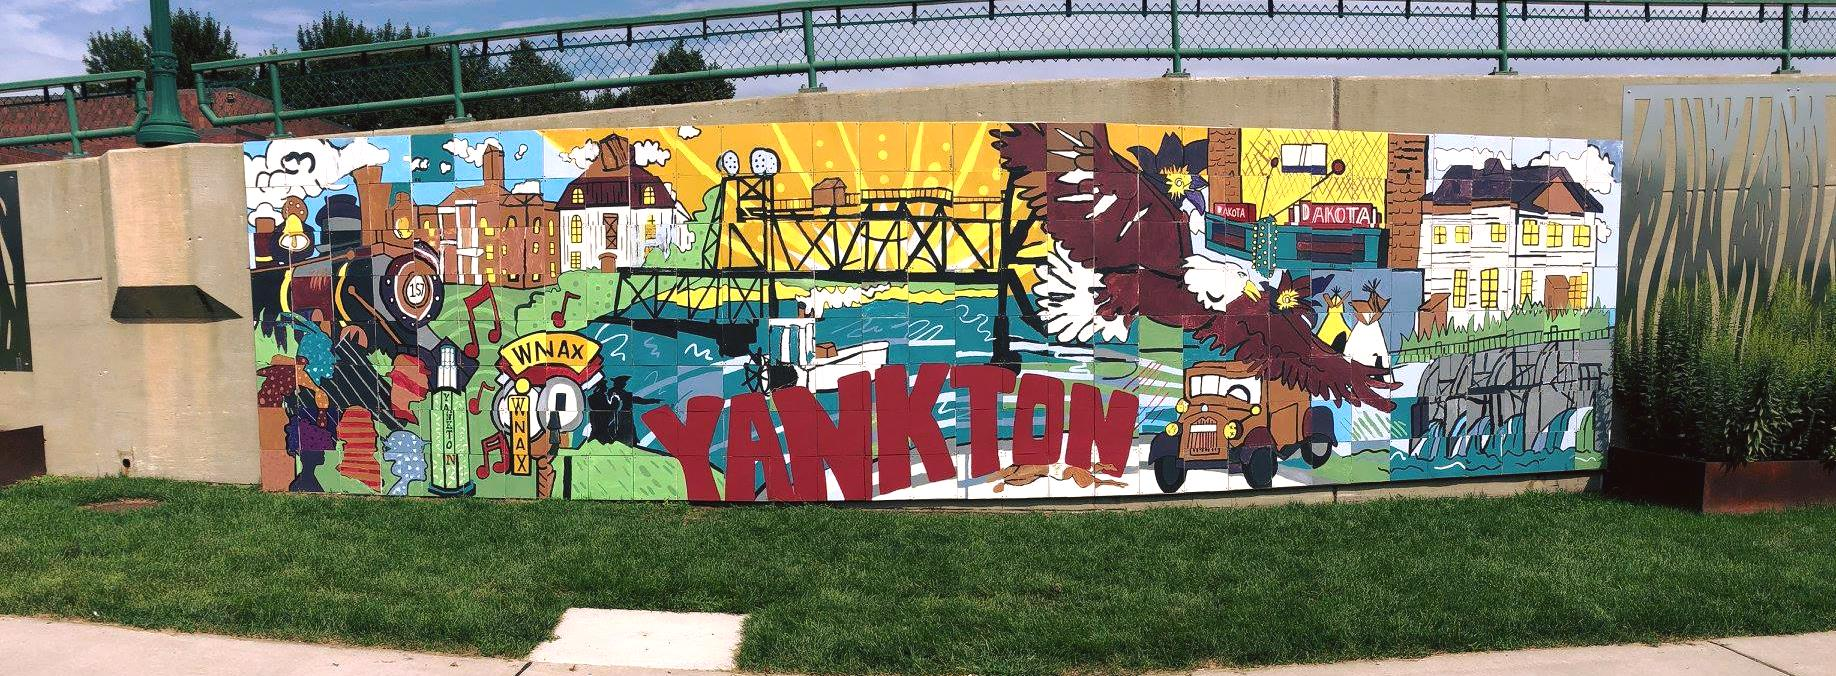 yankton-photo-of-mural